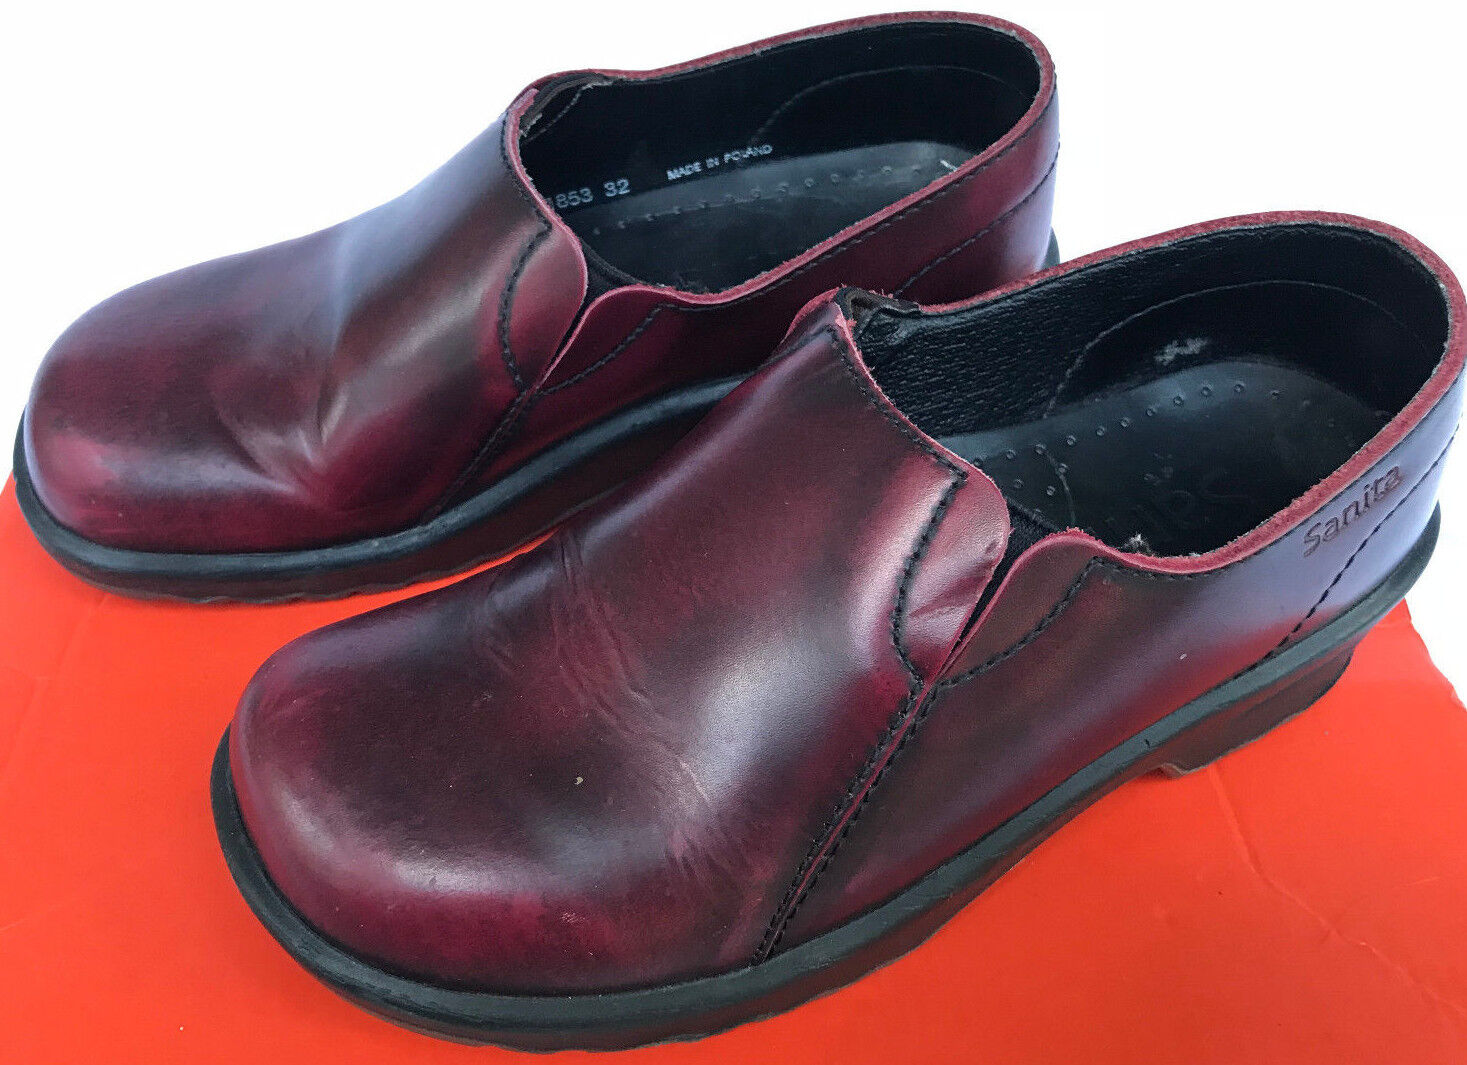 Sanita Solid Professional Red Leather SlipOn Danish Clogs Clogs Clogs shoes Women's 6 EUR 36 7c4308